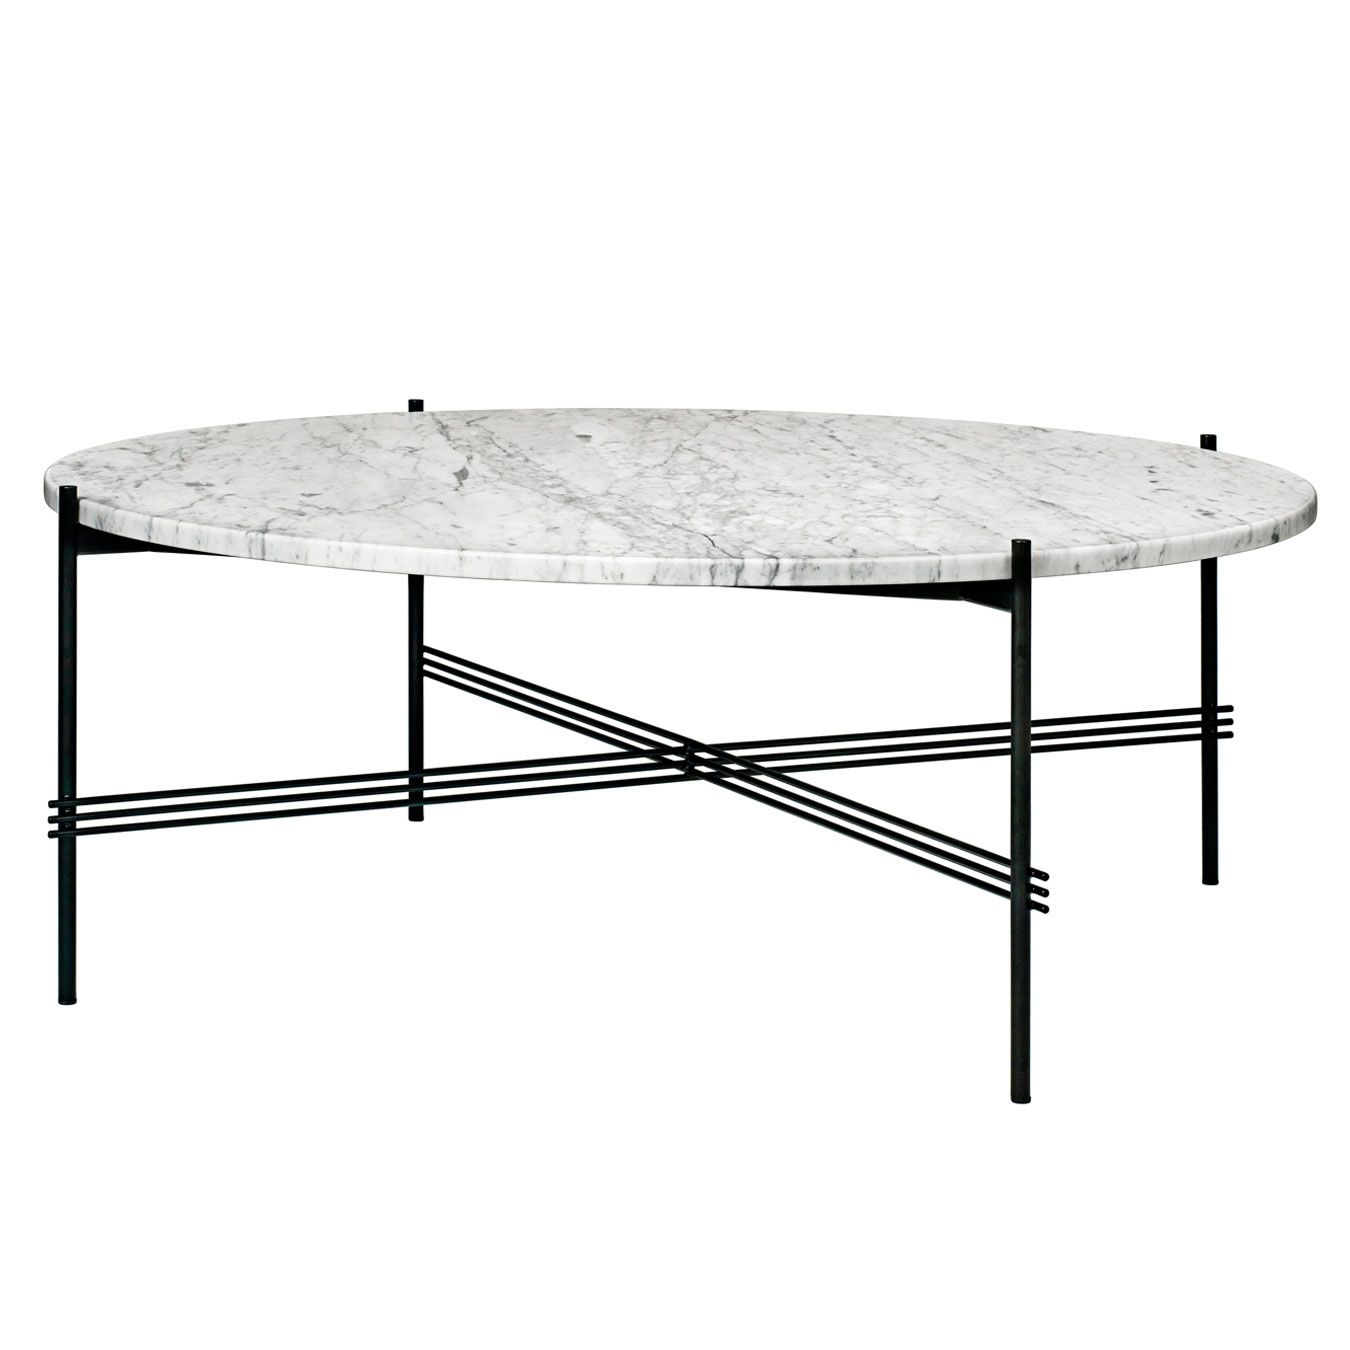 Ts Round Coffee Tables Coffee Table Round Coffee Table Marble Table [ 1350 x 1350 Pixel ]